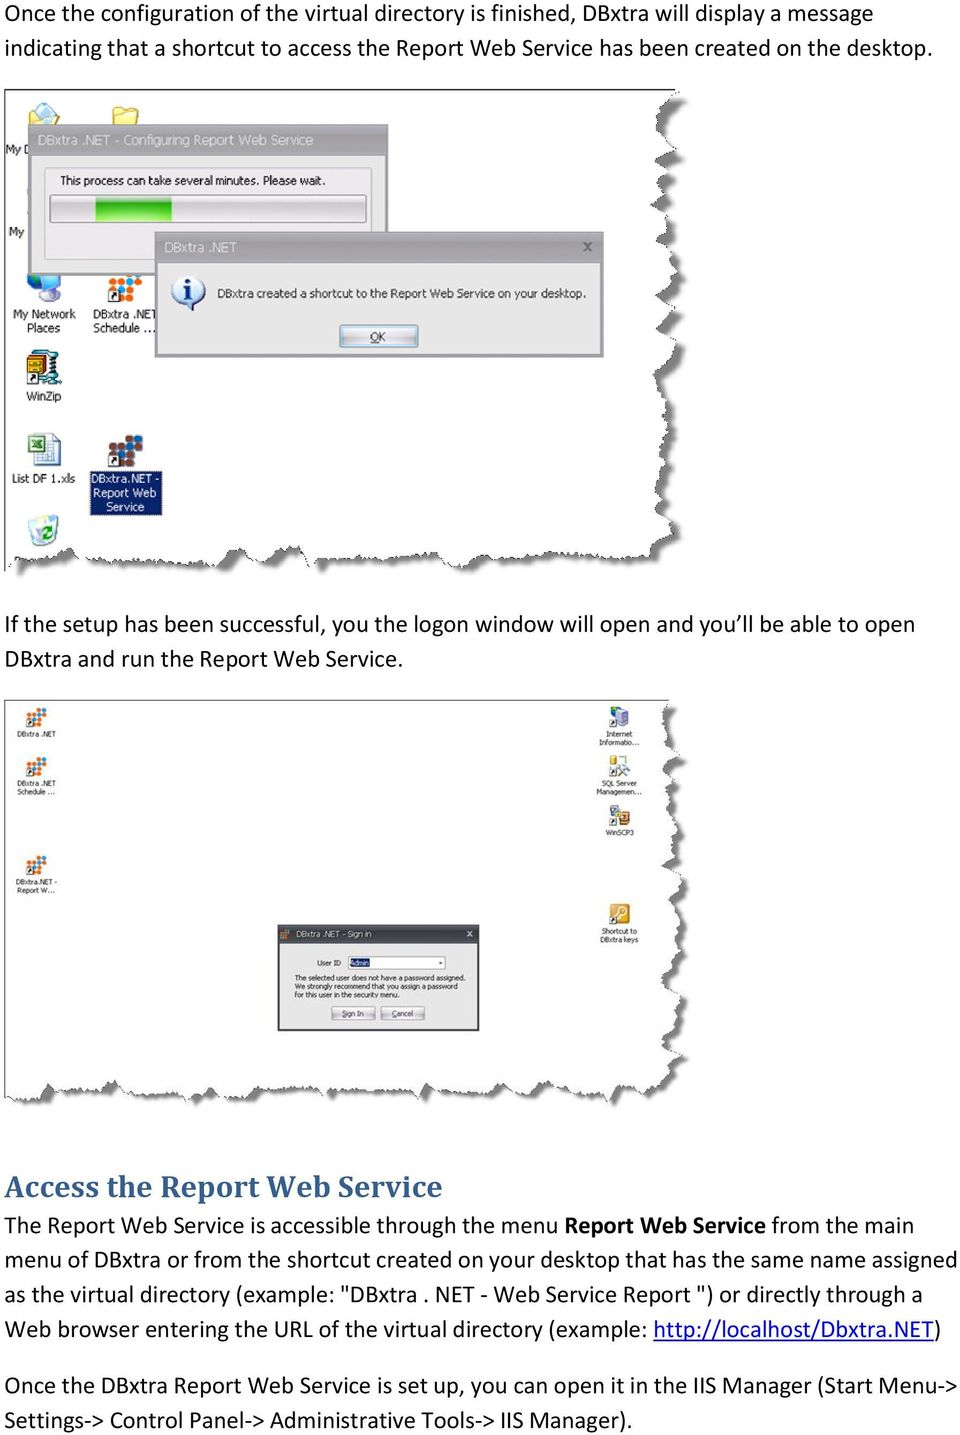 Access the Report Web Service The Report Web Service is accessible through the menu Report Web Service from the main menu of DBxtra or from the shortcut created on your desktop that has the same name